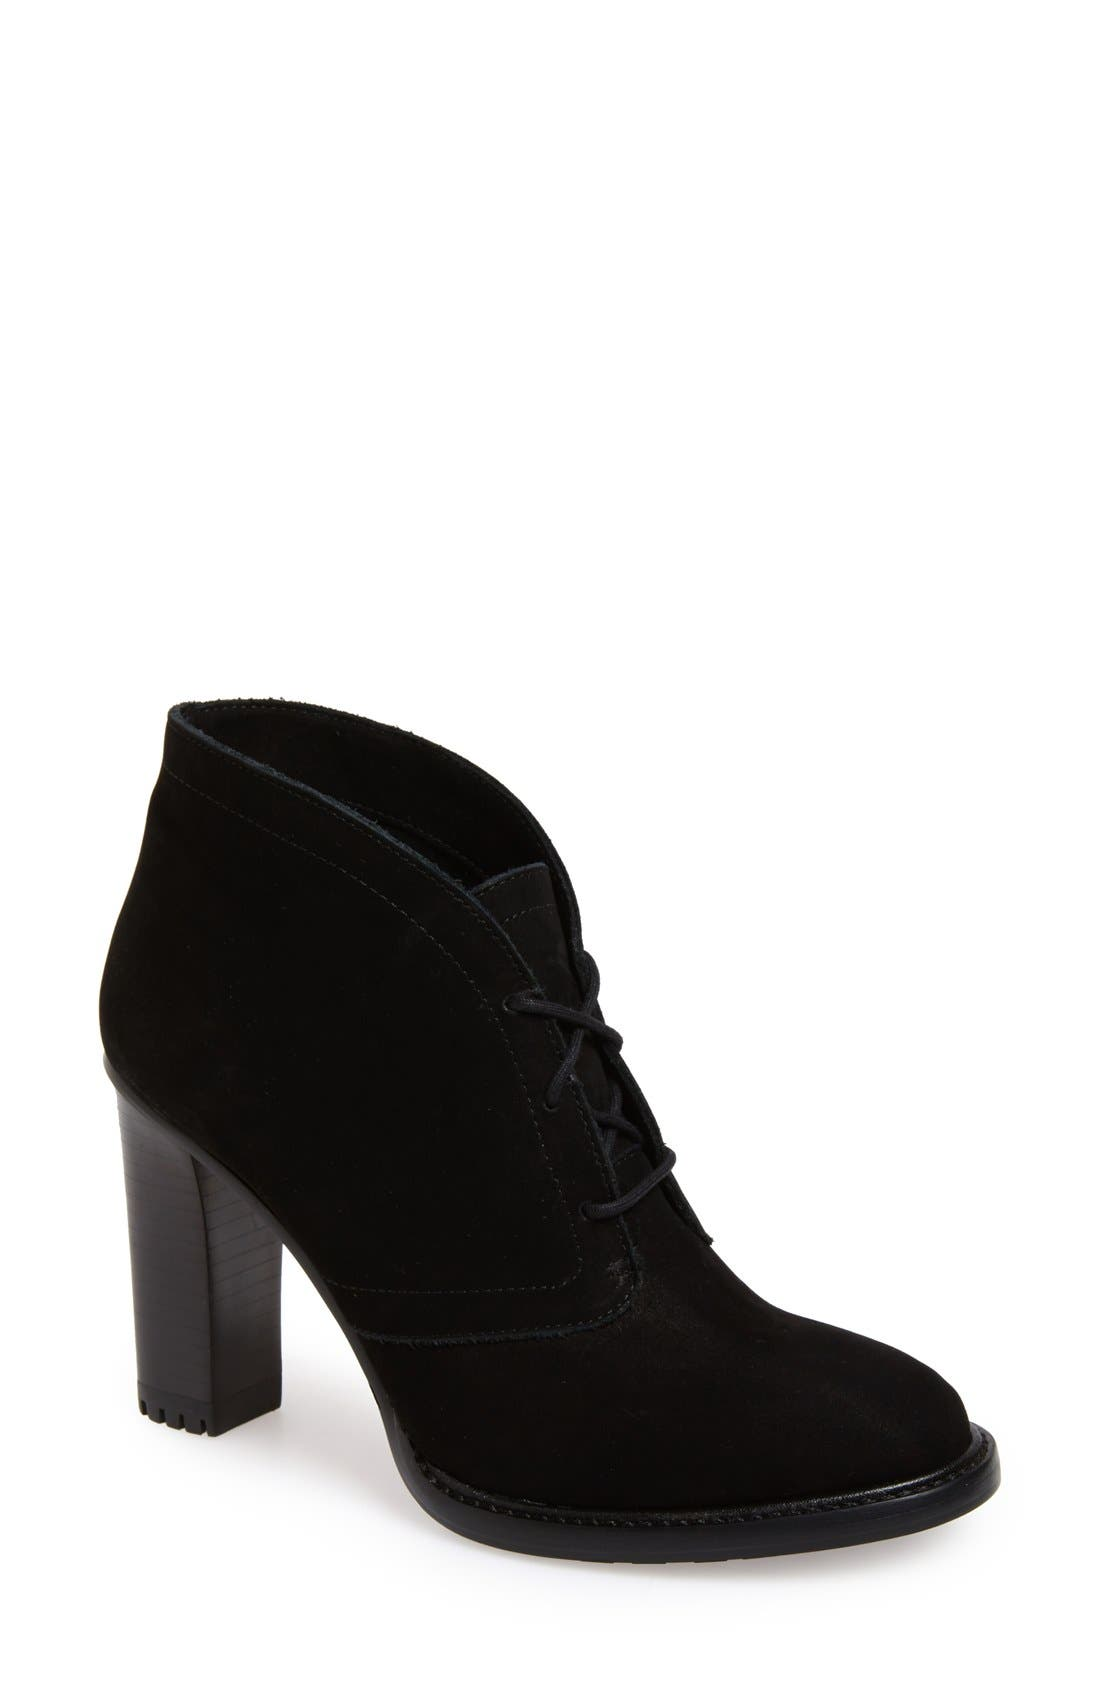 Alternate Image 1 Selected - Vince Camuto 'Lehanna' Bootie (Women)